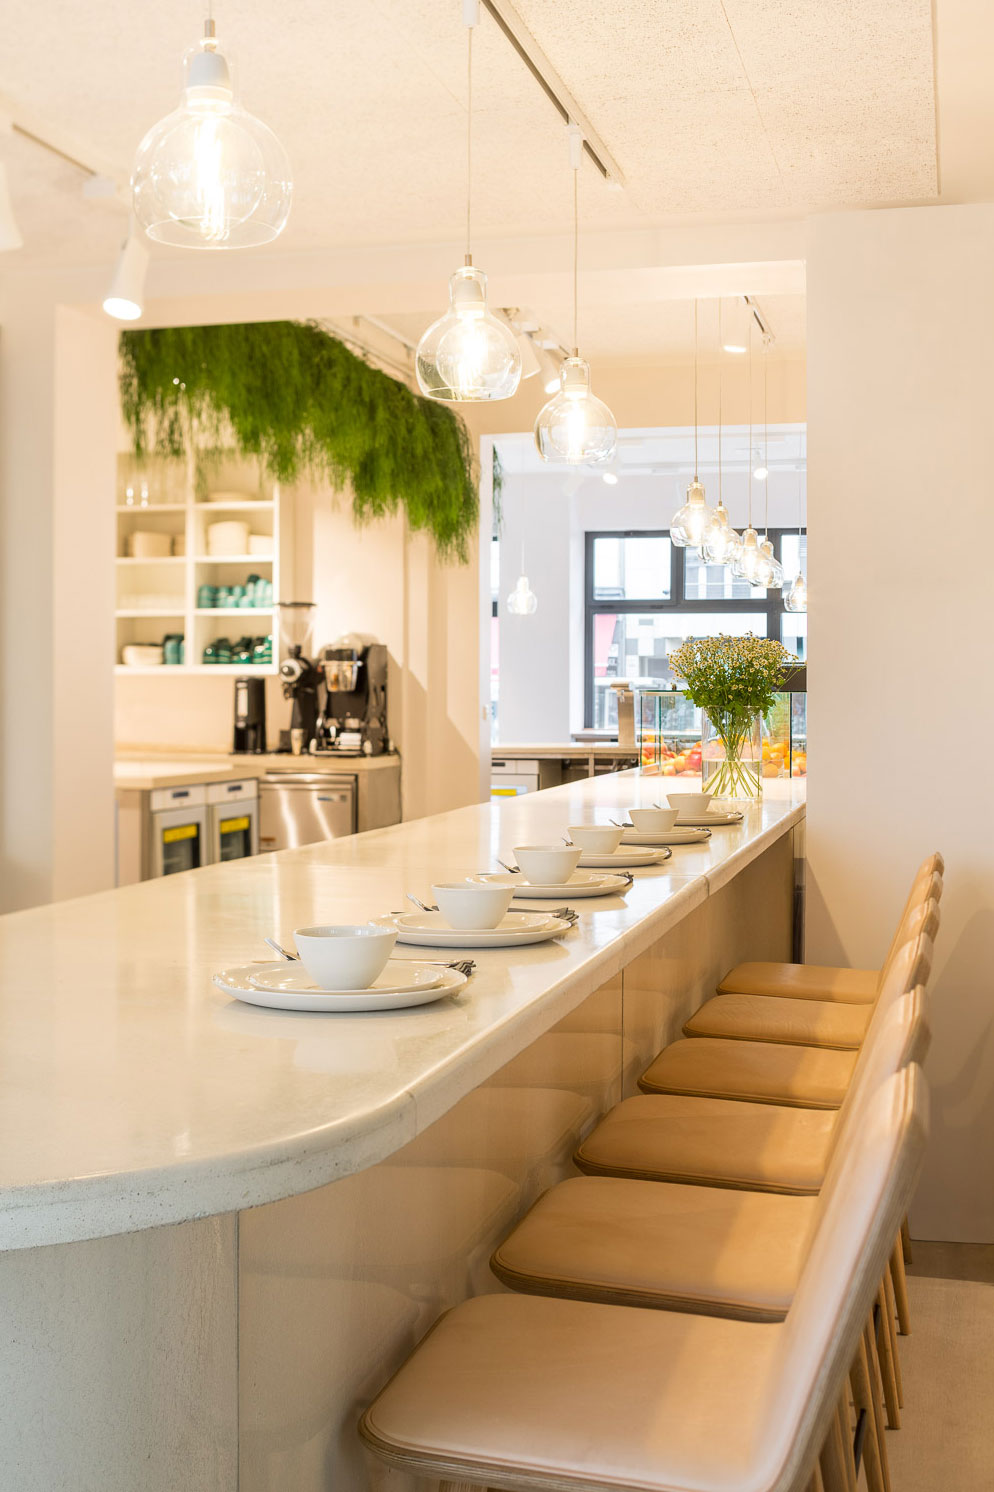 Architecture-London-Design-Freehaus-Hermanns-Berlin-Coworking-Cafe-Counter-1.jpg